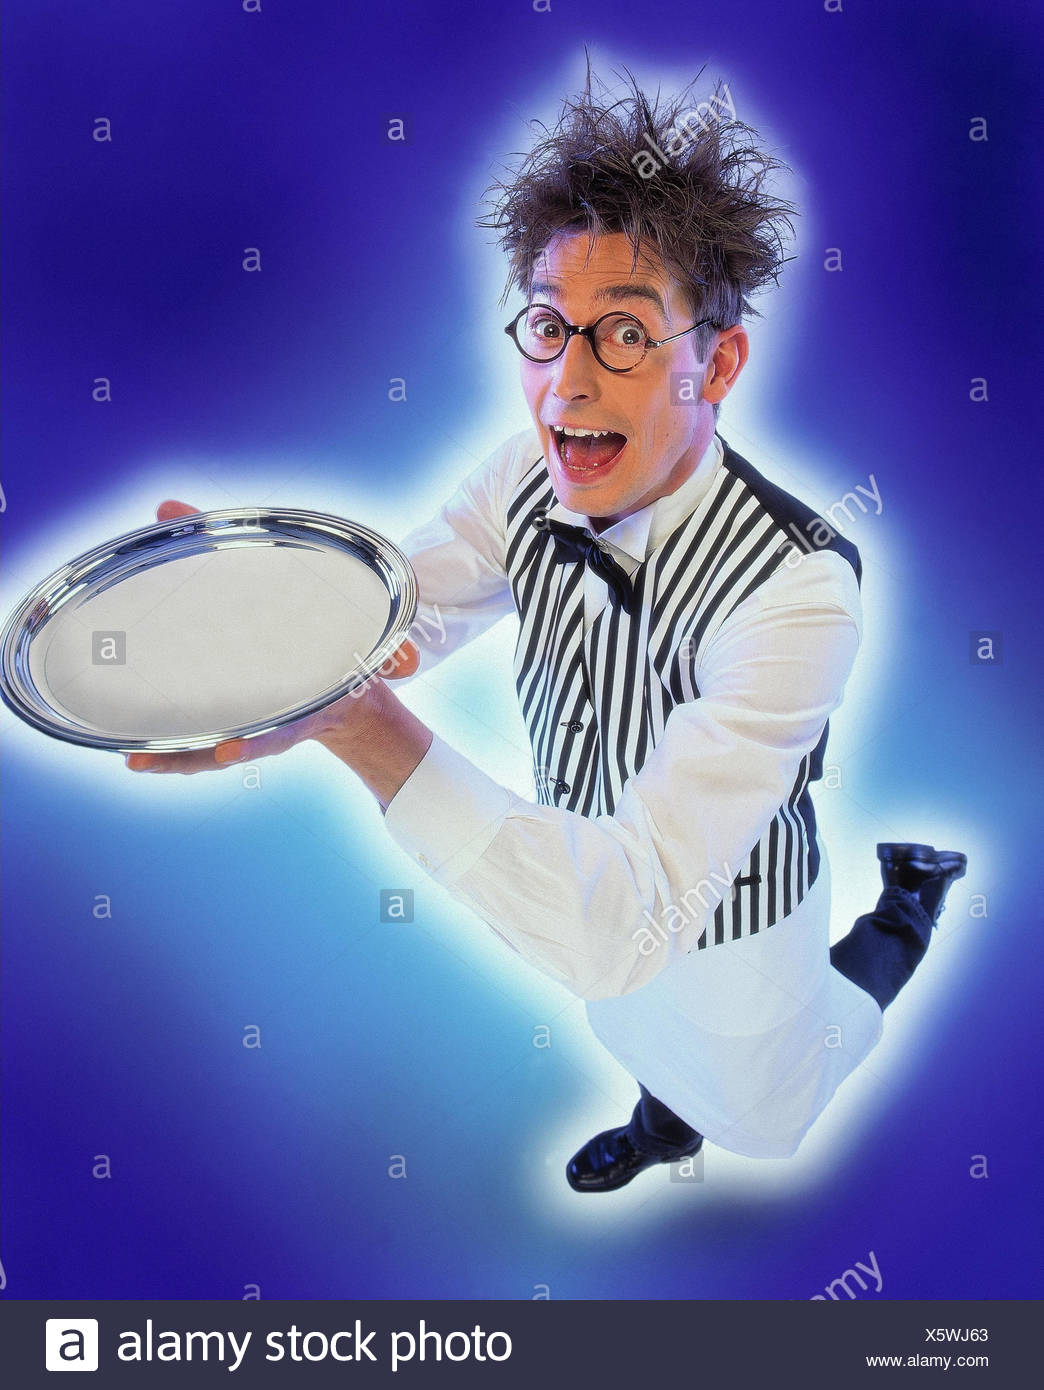 Waiters, glasses, silver tablet, carry, facial play man, service, waiters, gastronomy, serve, serve, bring, presentation, blank, hairs, ruffles, offer, service, service - Stock Image